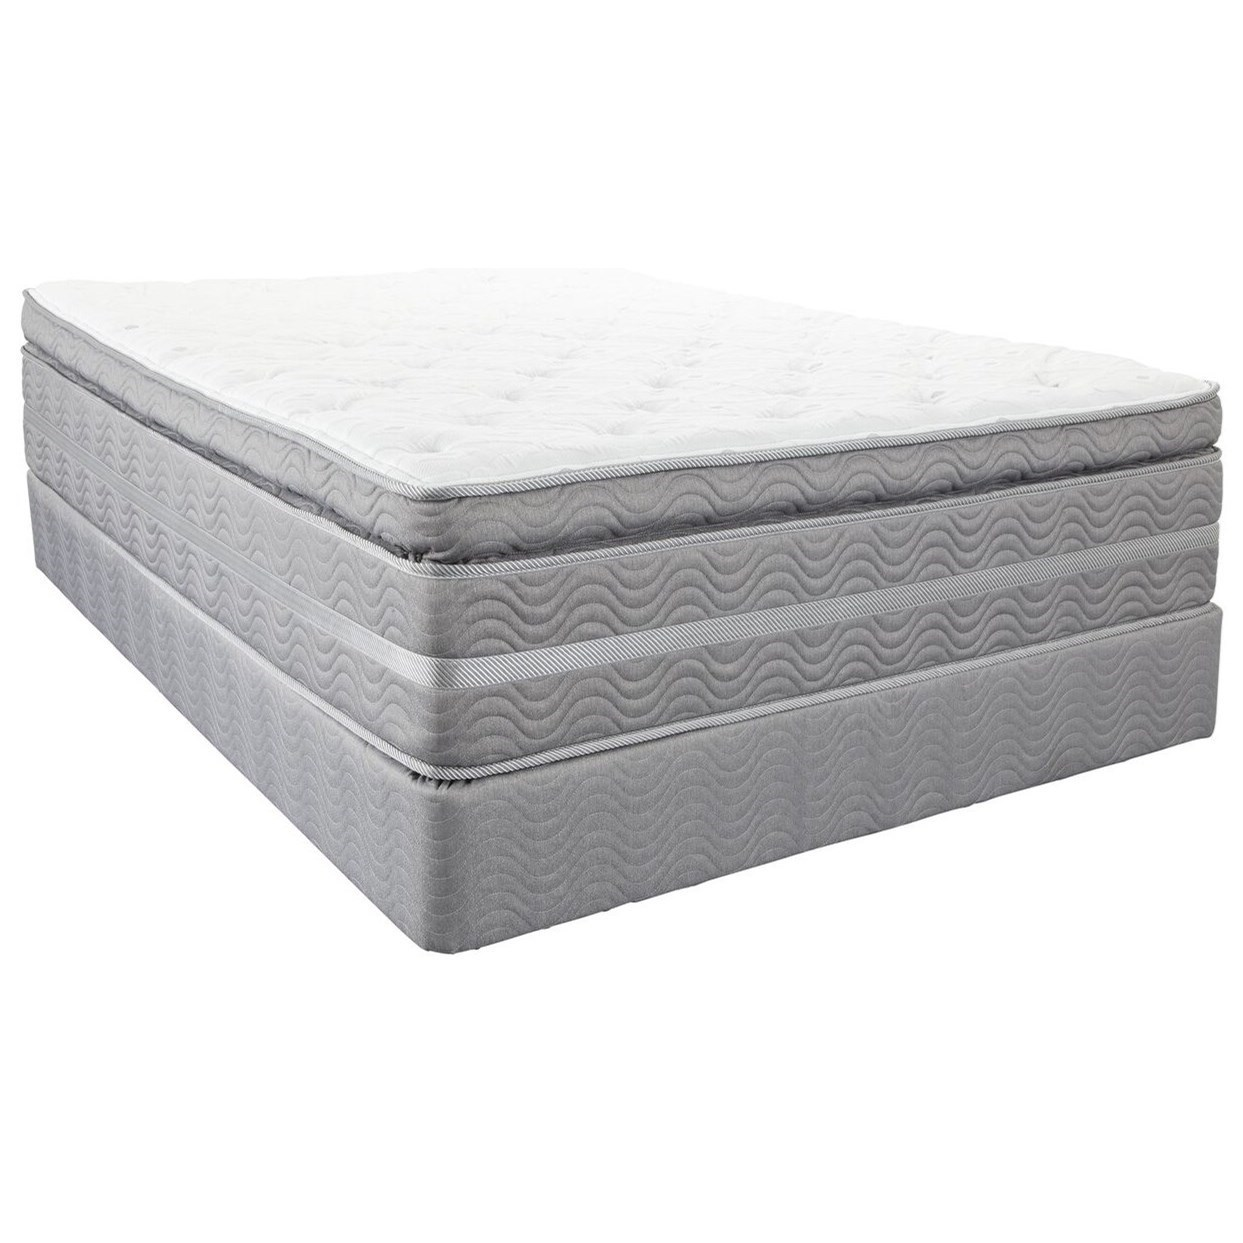 Pillow Top King Mattress Robertson King Super Pillow Top Mattress By Southerland At Royal Furniture